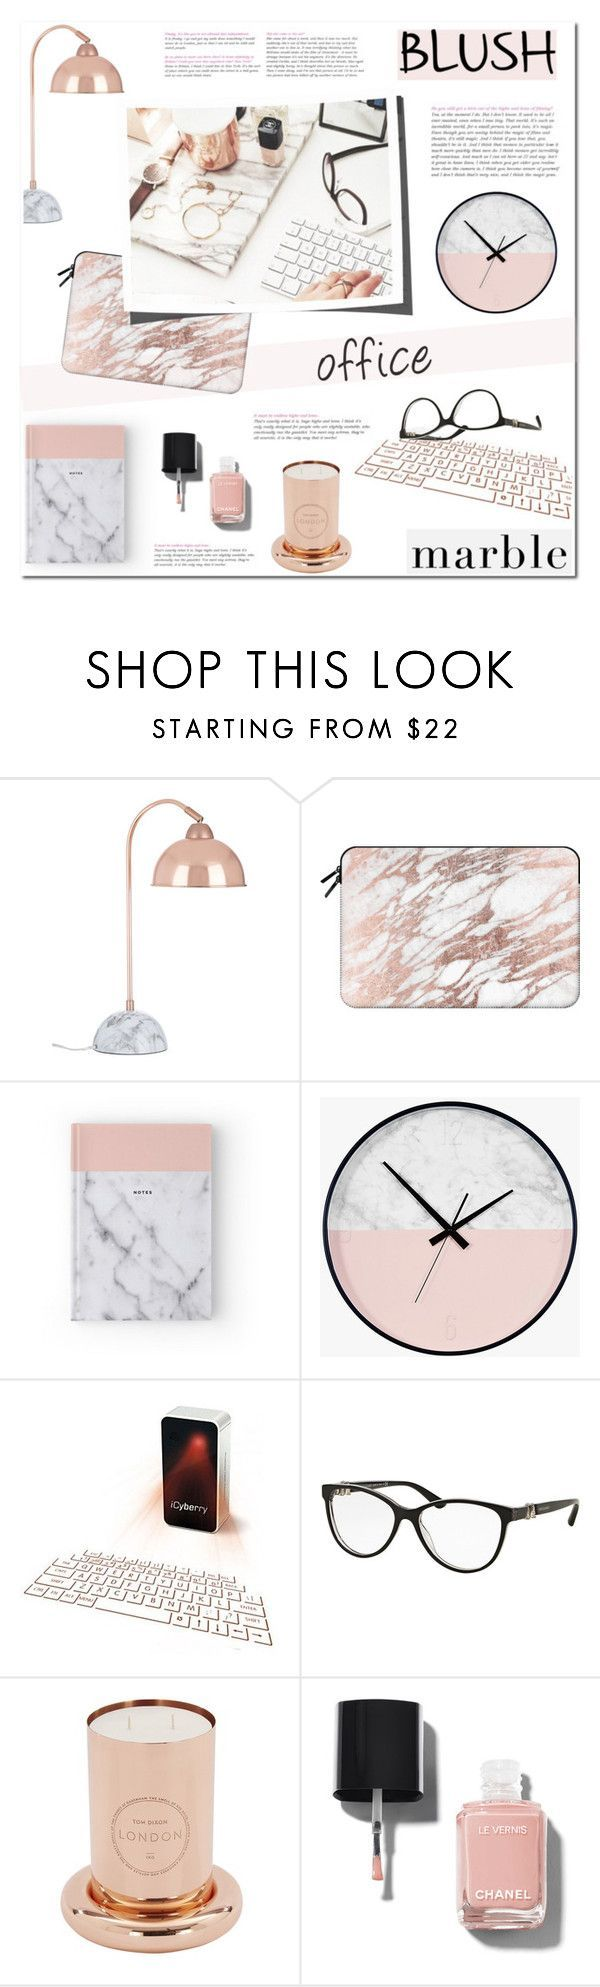 """Blush + Marble Office details"" by helenevlacho on Polyvore featuring interior, interiors, interior design, home, home decor, interior decorating, Casetify, Bulgari, Tom Dixon and Chanel"